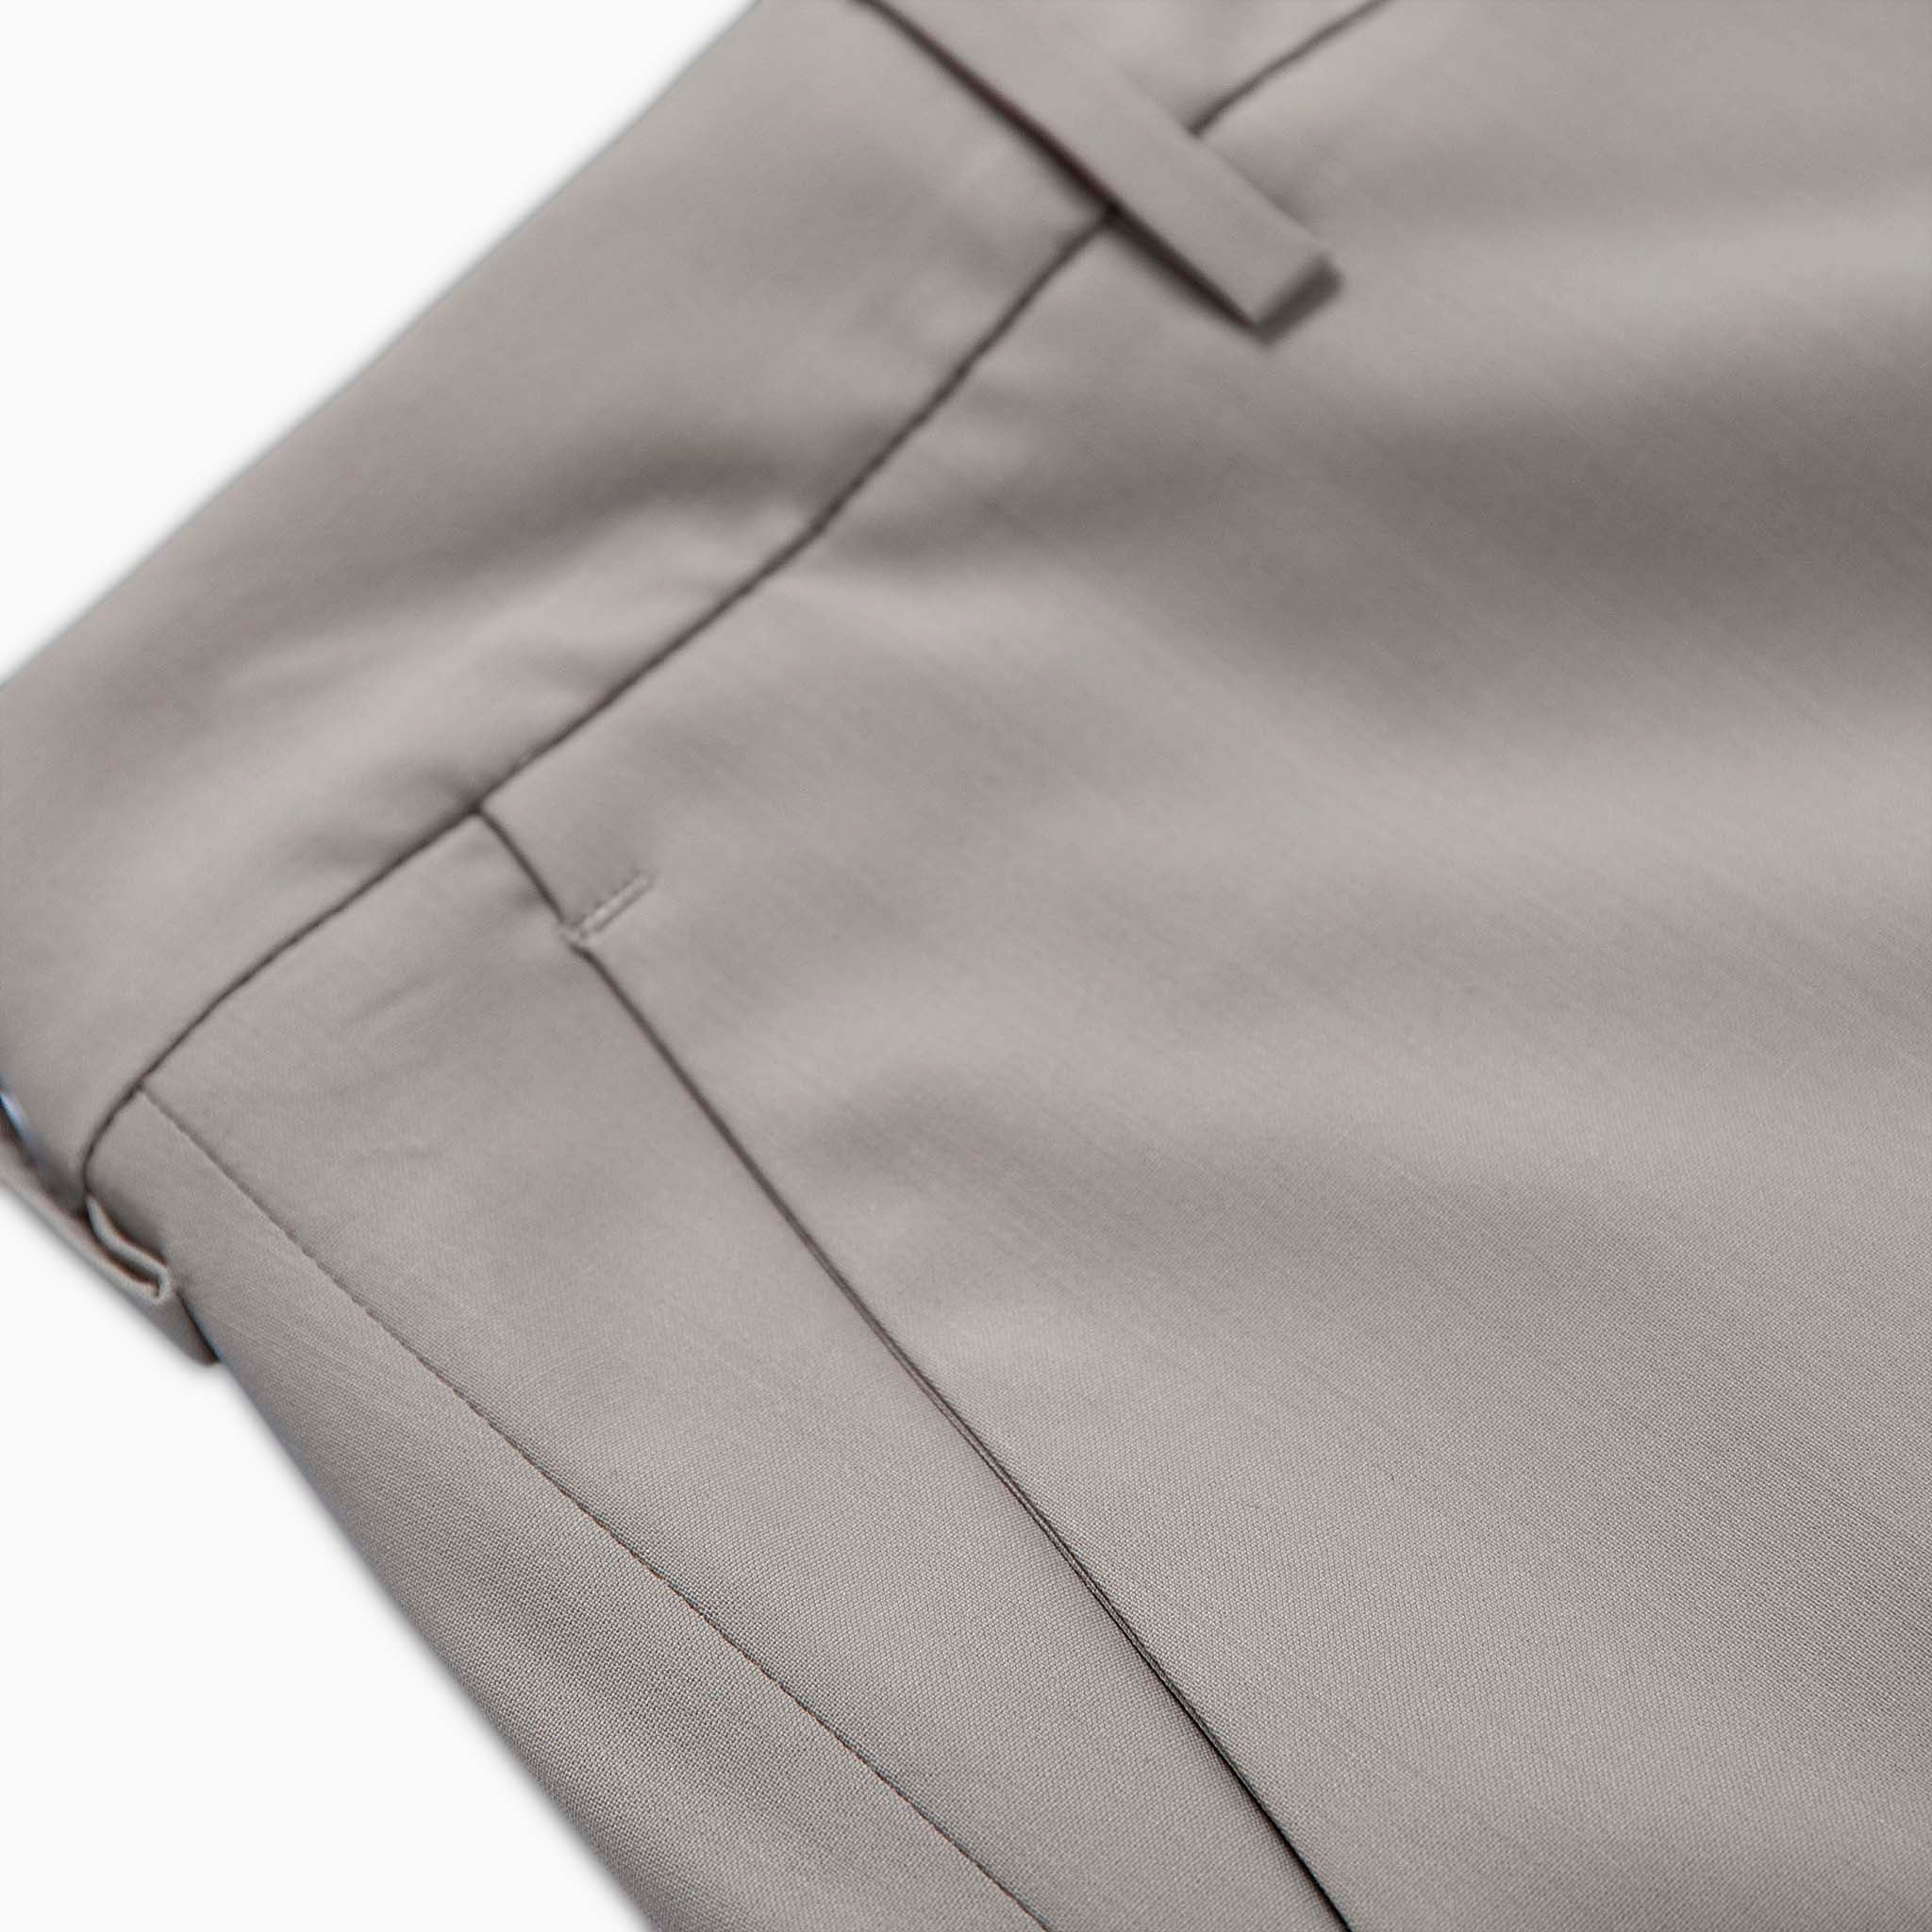 Boris Chino Pants water repellent active wool (light sand)